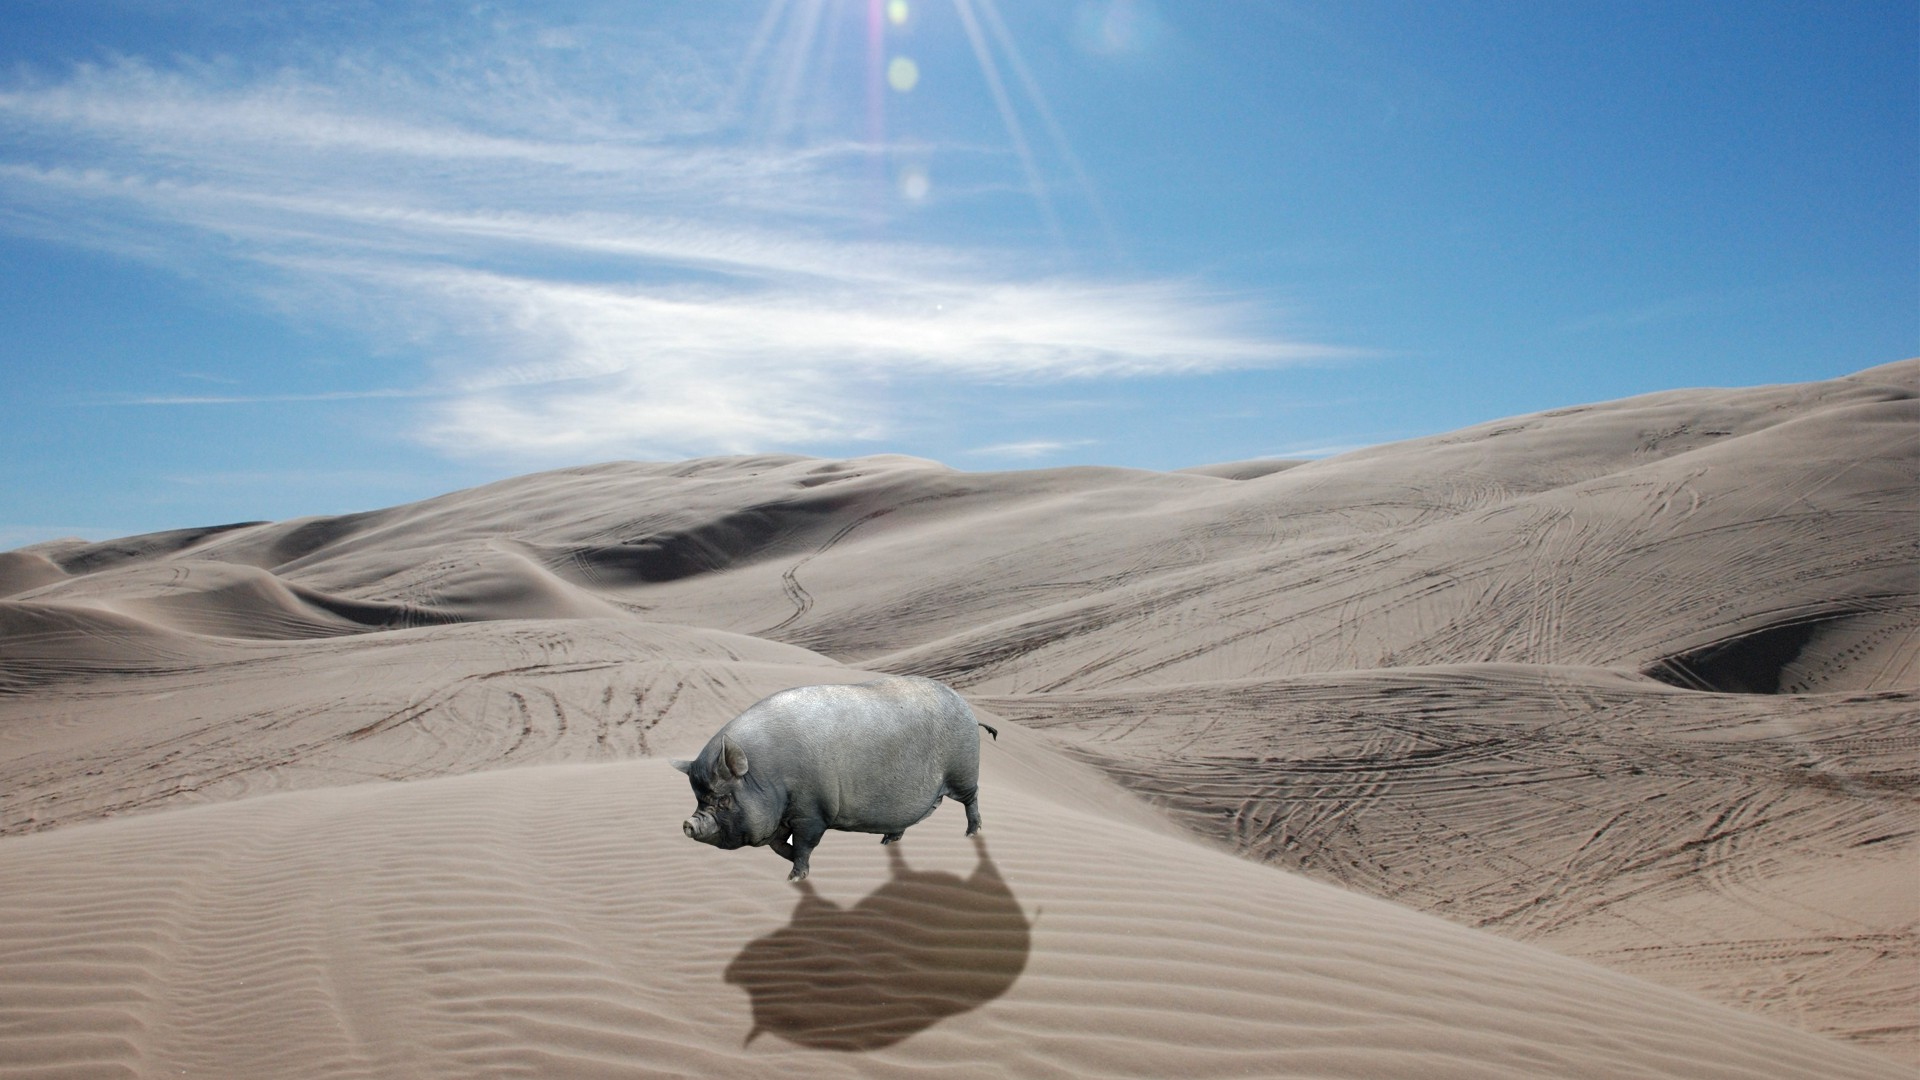 Wallpaper Landscape Animals Pigs Nature Sand Desert